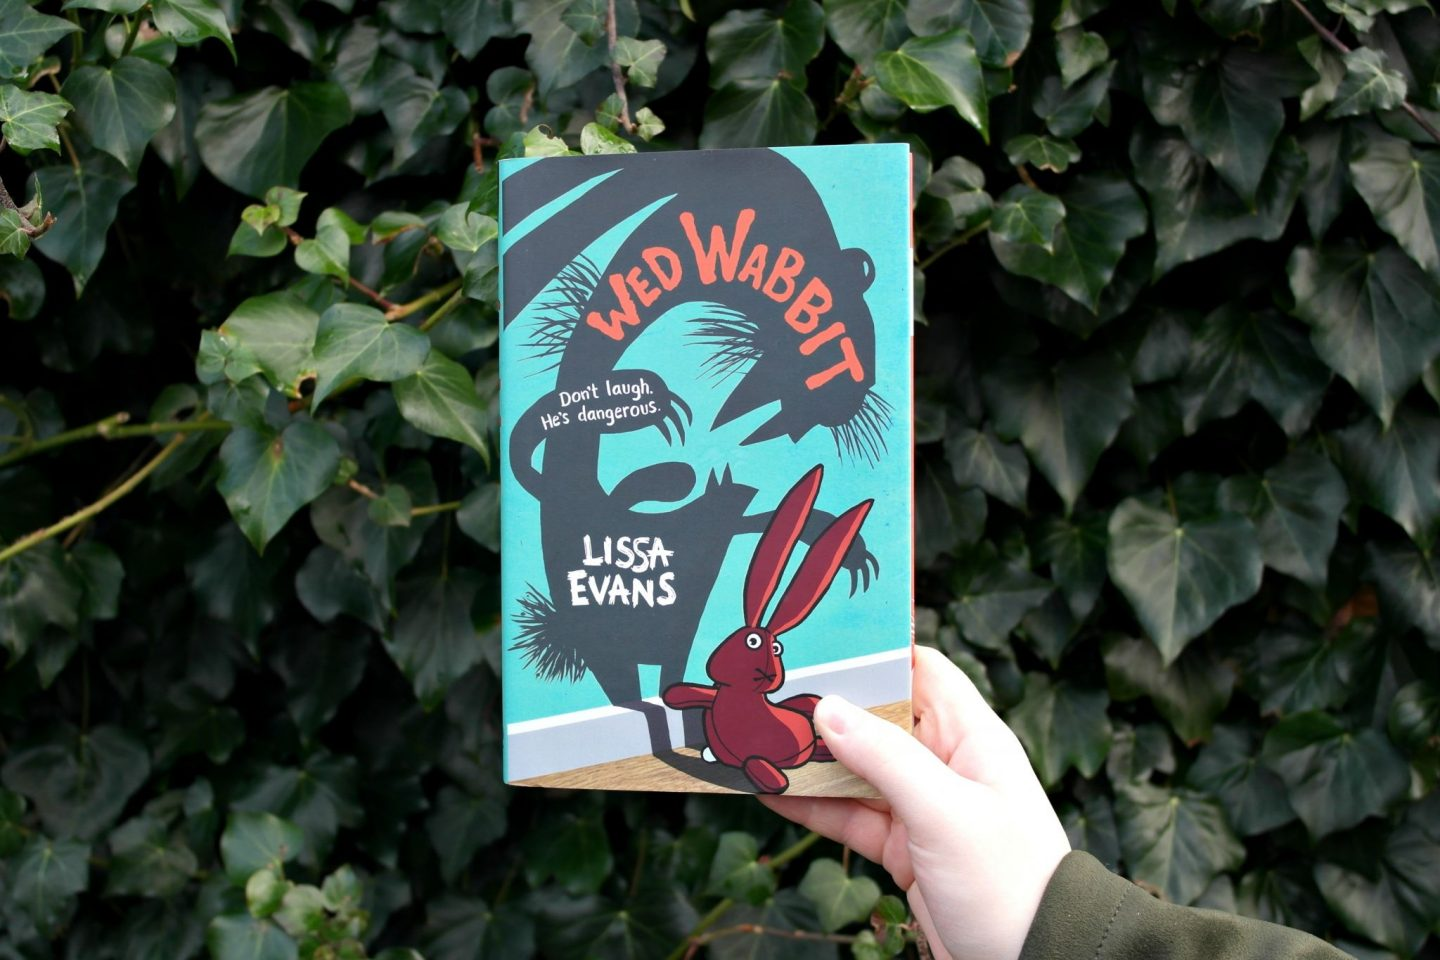 Review: Wed Wabbit by Lissa Evans – The Costa Book Awards